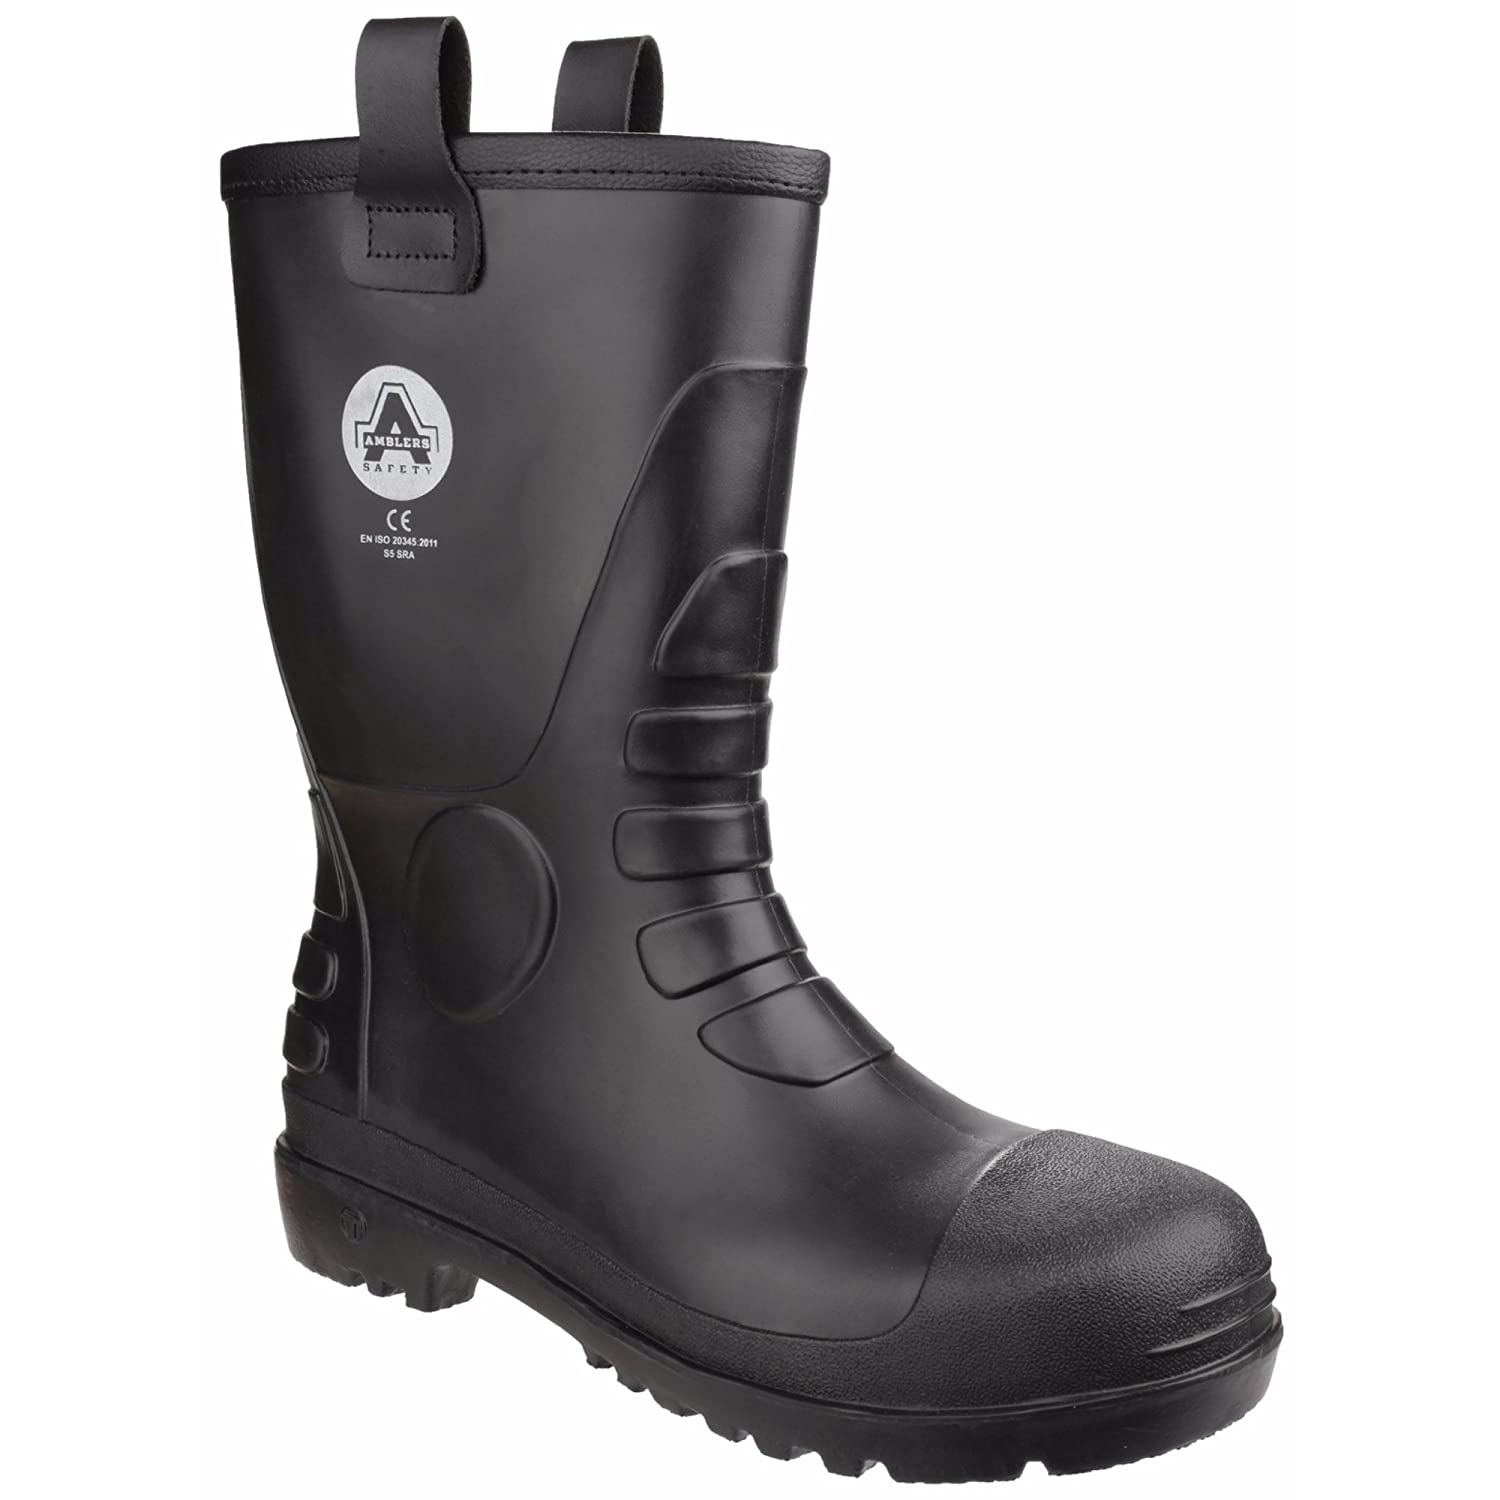 Amblers Safety Unisex FS90 Waterproof Pull On Safety Rigger Boot B06ZZKDQQC